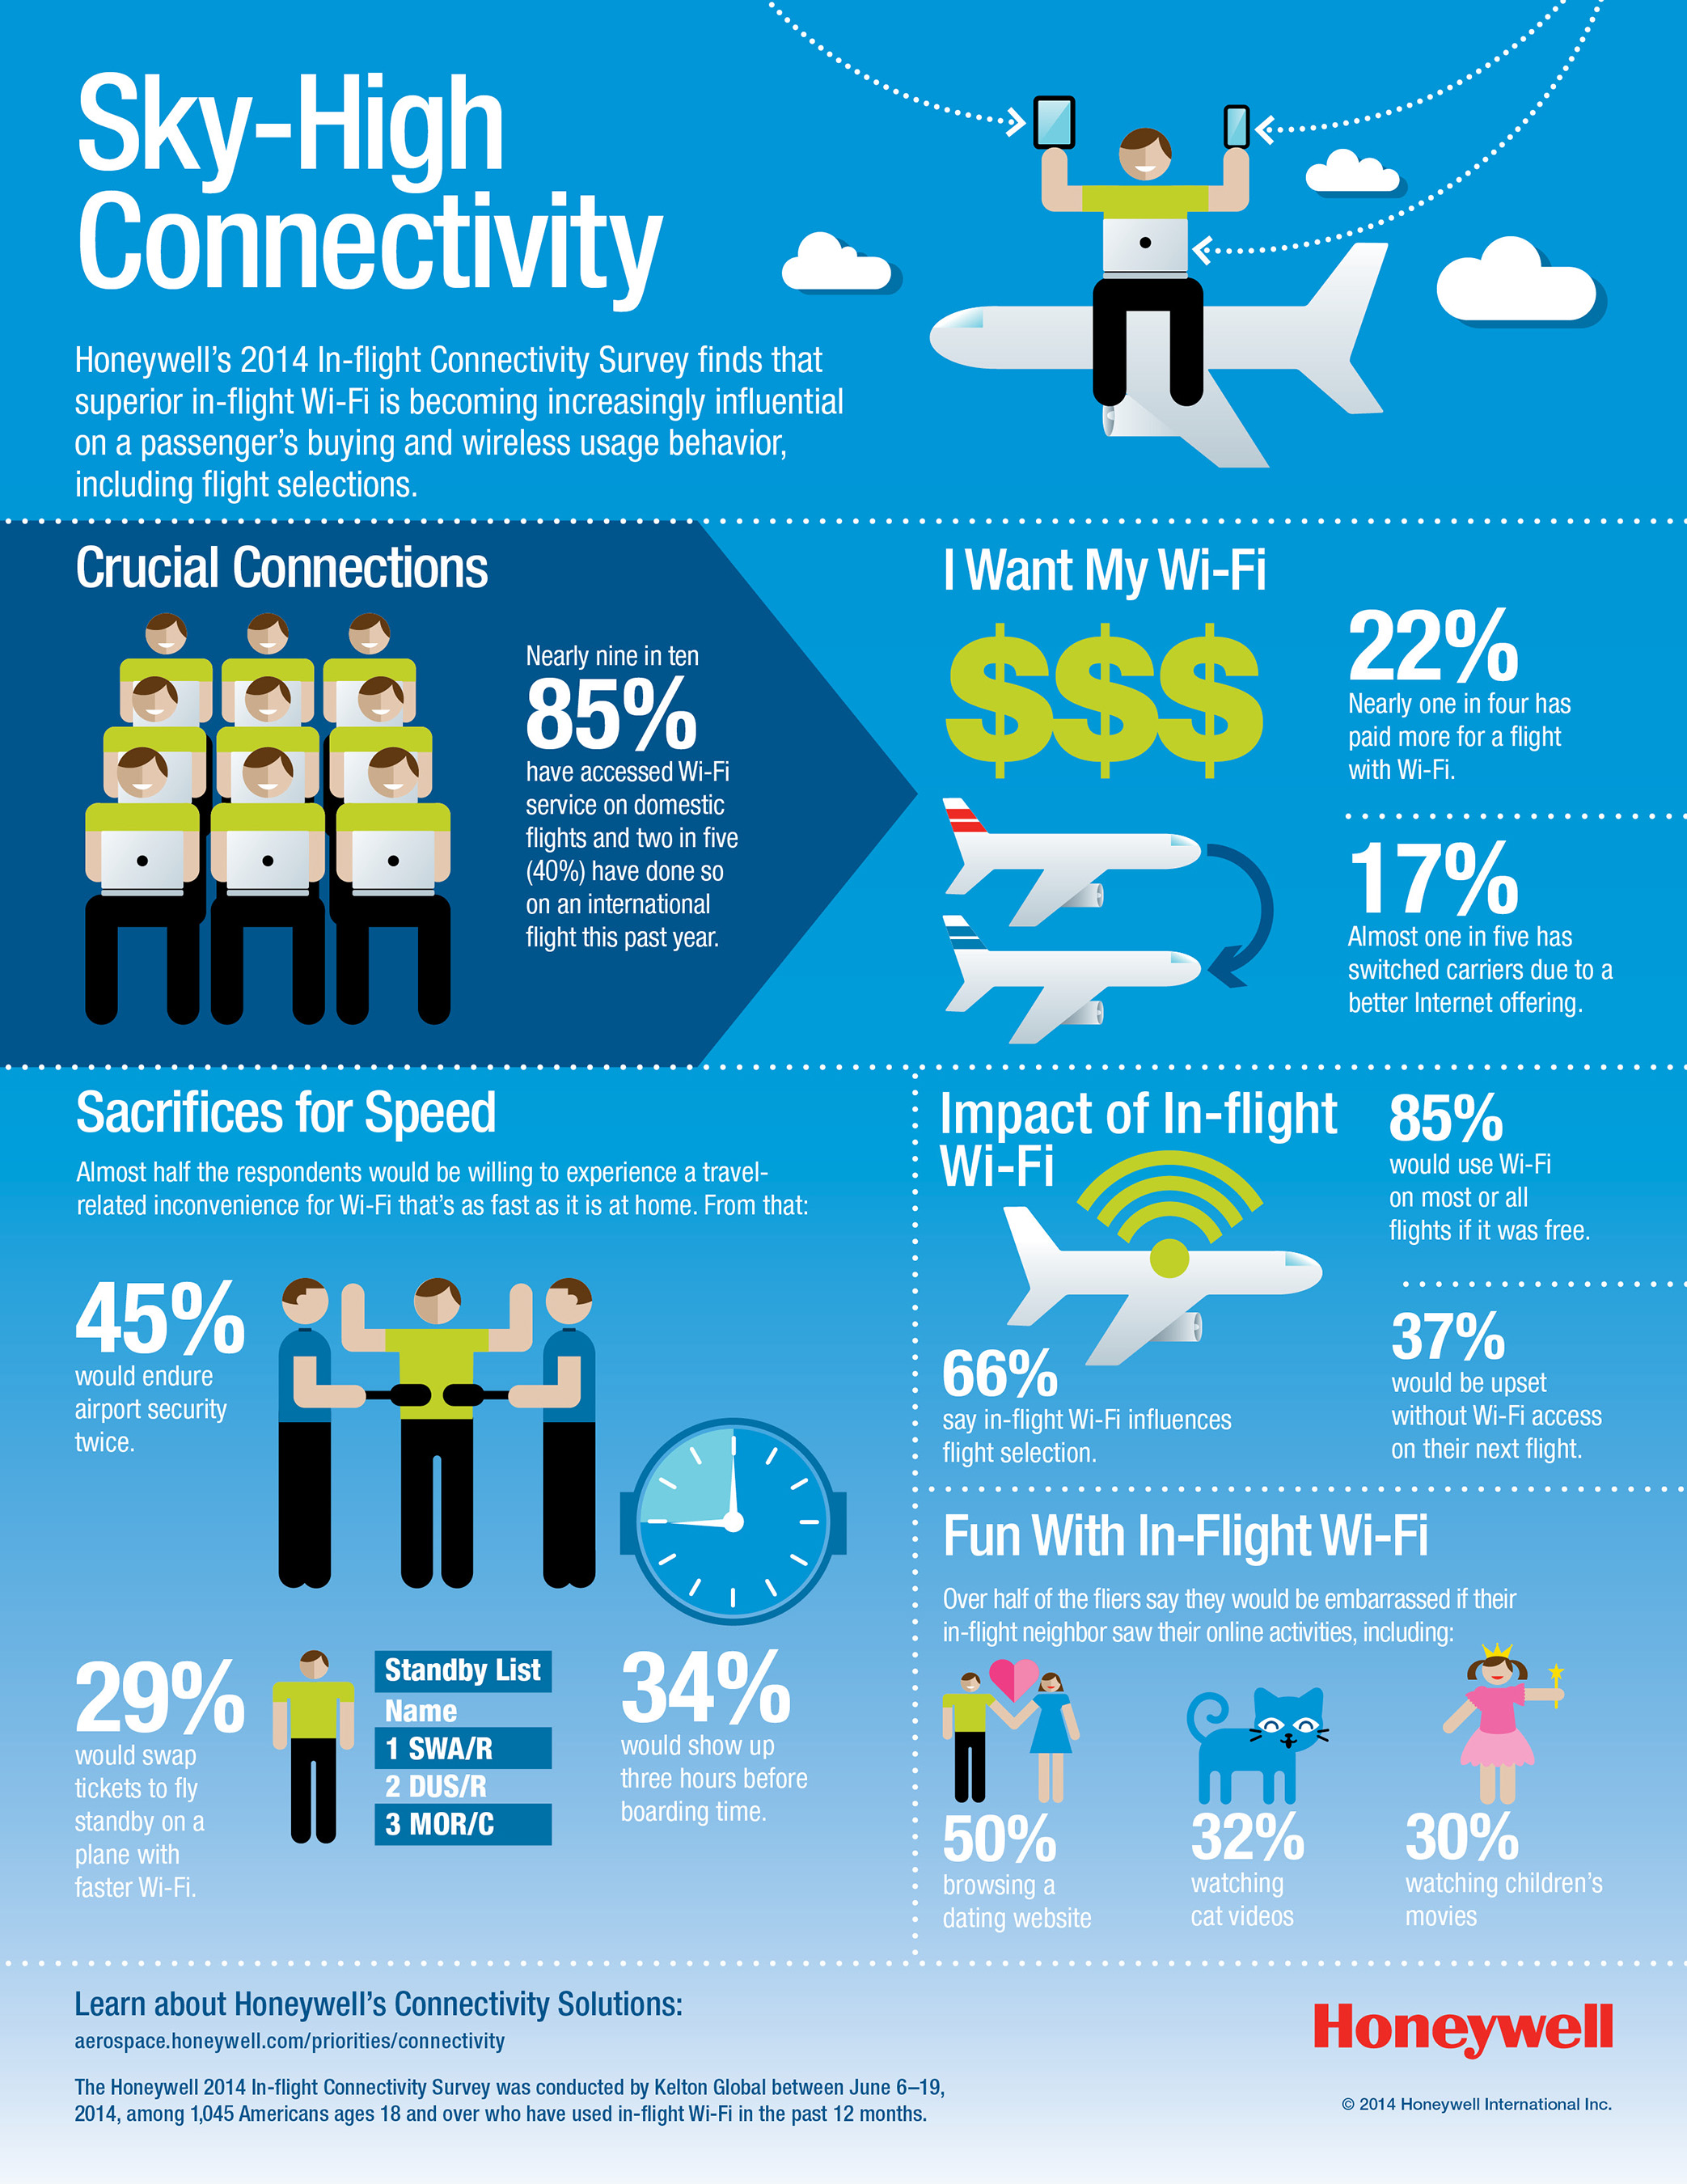 http://www.multivu.com/players/English/7243951-honeywell-survey-what-passengers-demand-from-in-flight-wi-fi/gallery/image/c9c62604-bac7-4afe-9d89-51b6682a5f28.HR.jpg